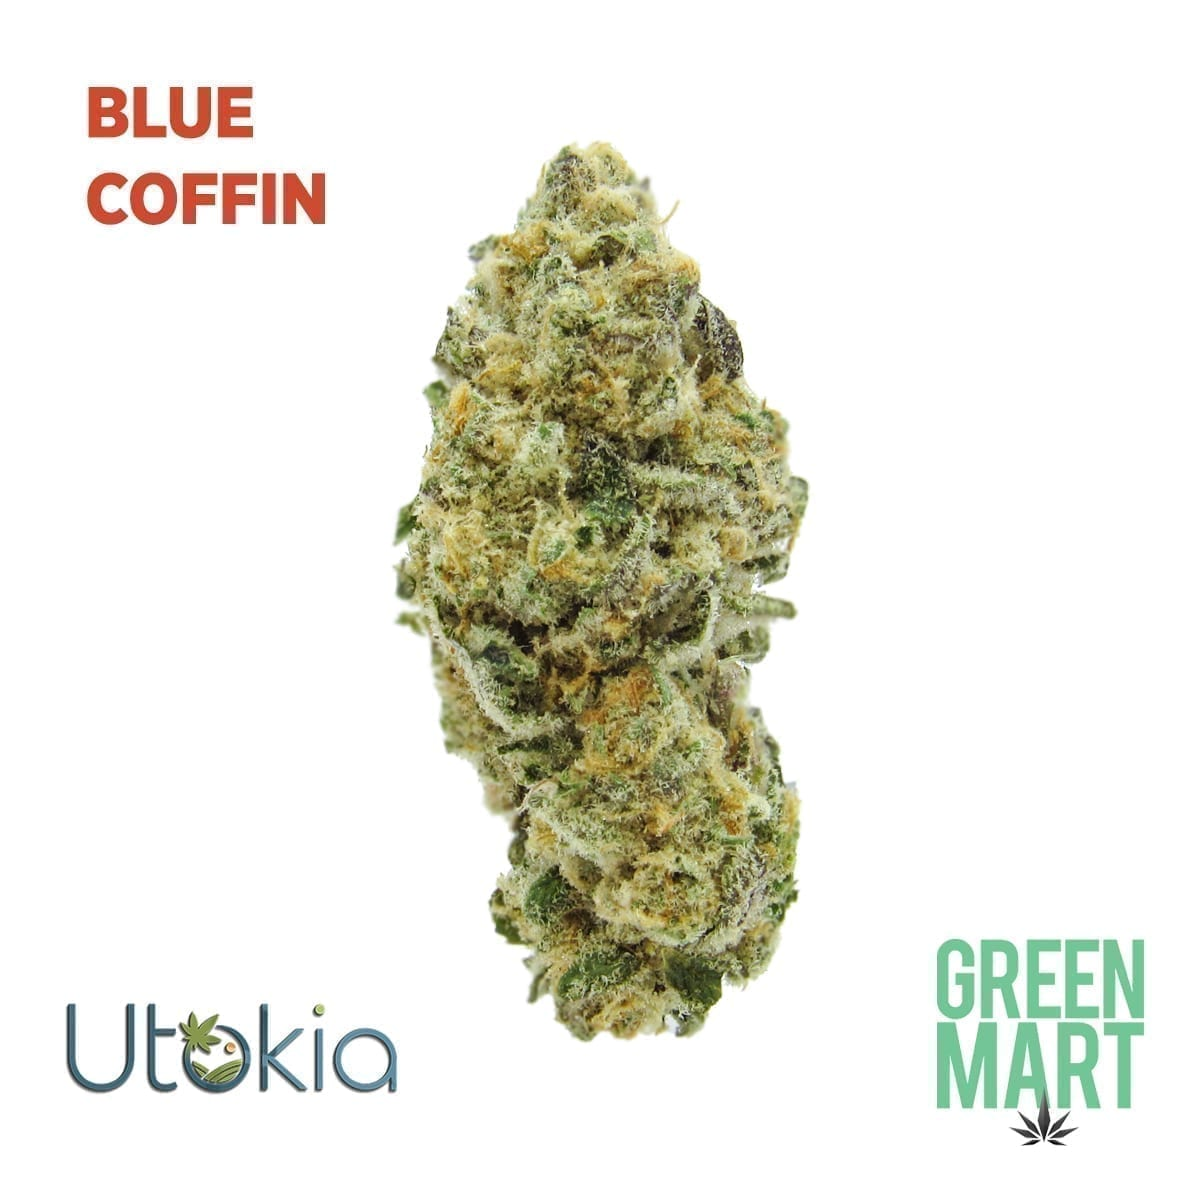 Blue Coffin by Utokia Farms